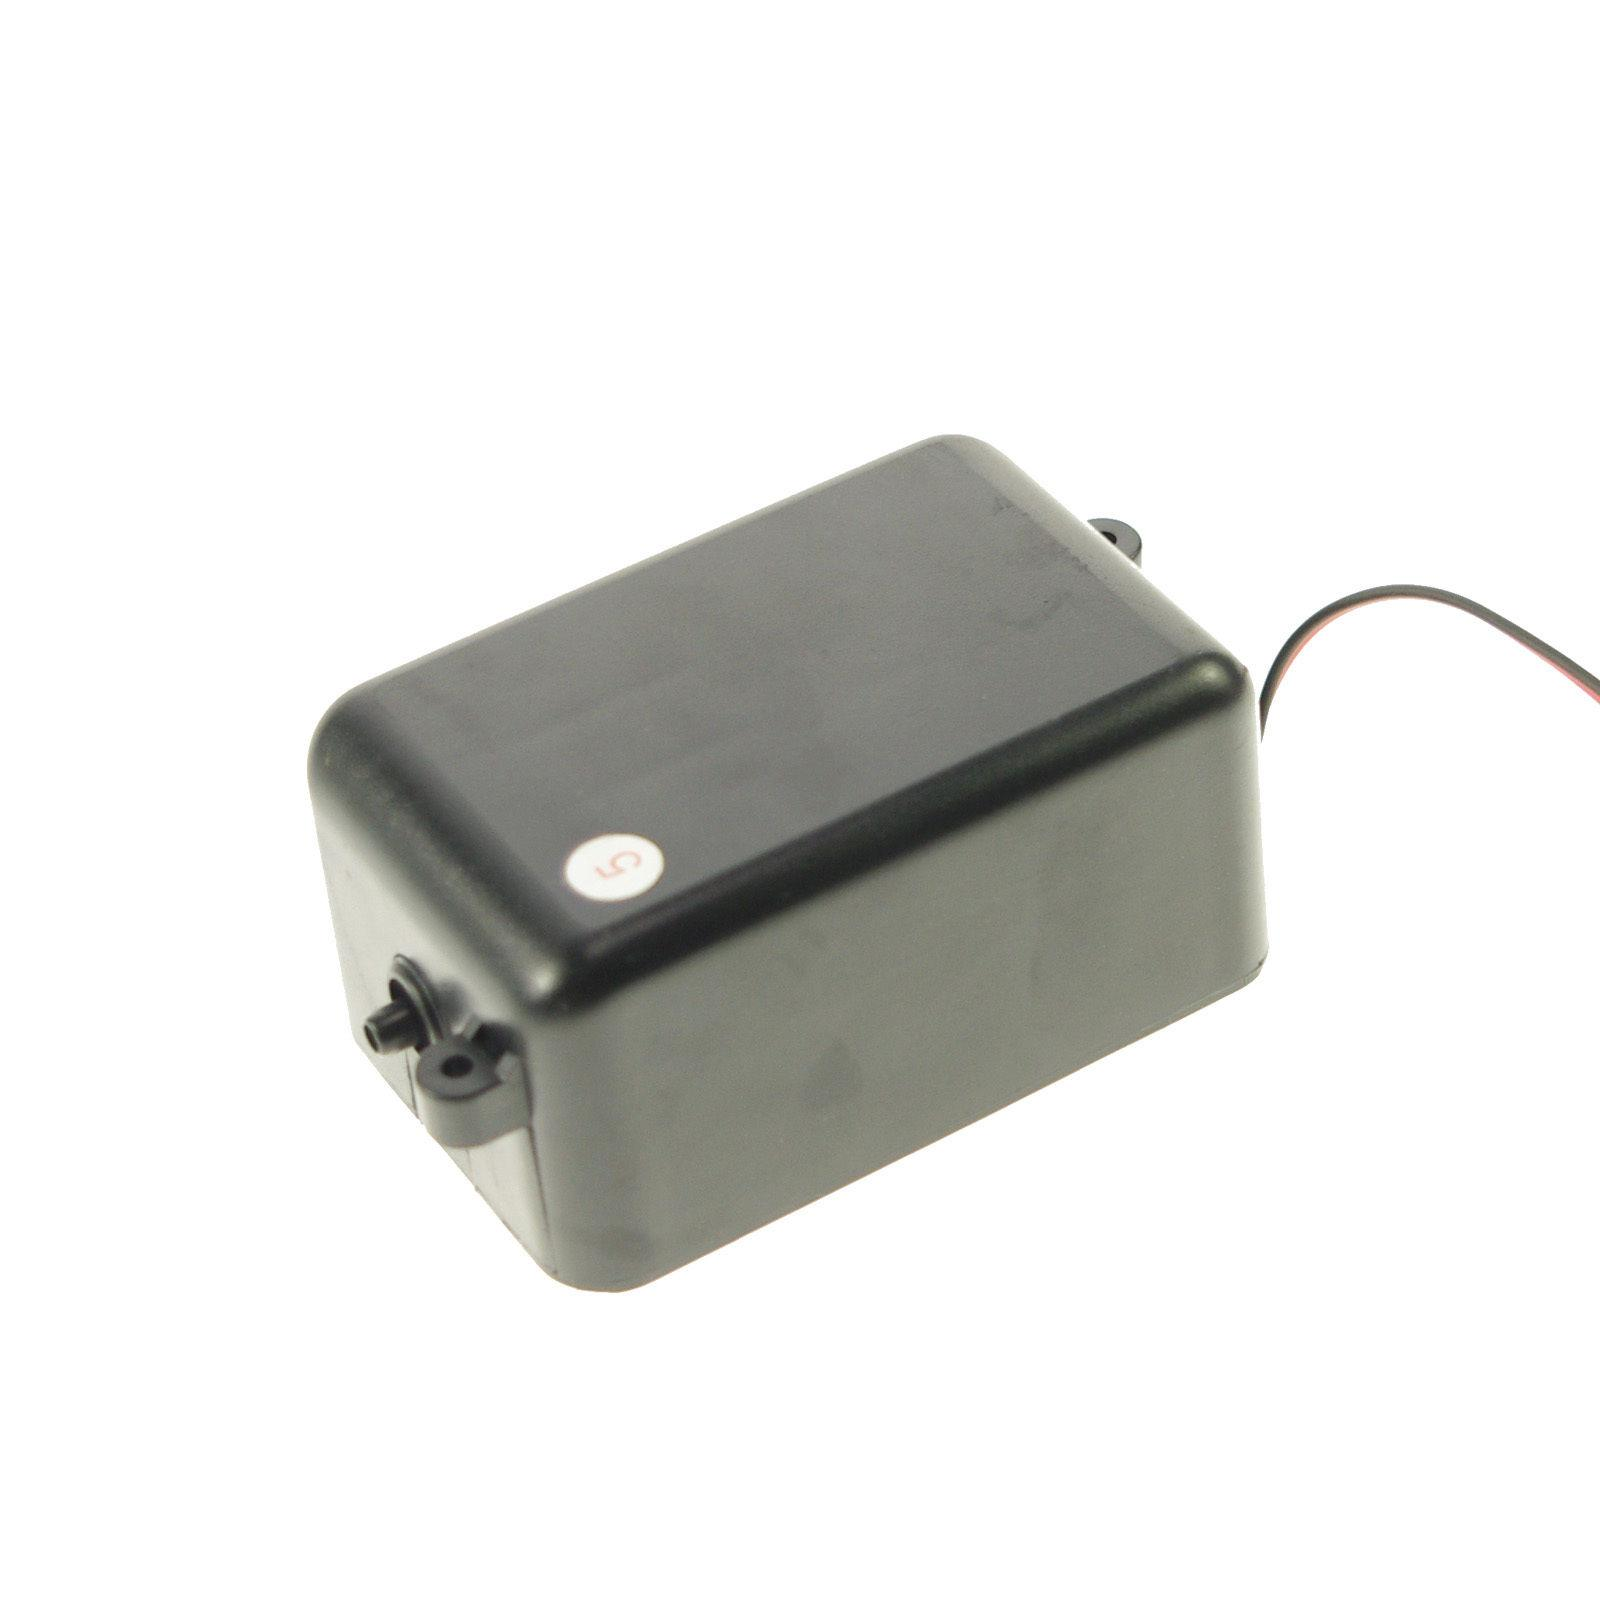 8L/Min 10W 12VDC 24VDC 110VAC 220VAC Special Ozone Air Pump For Ozone Generator Accessories